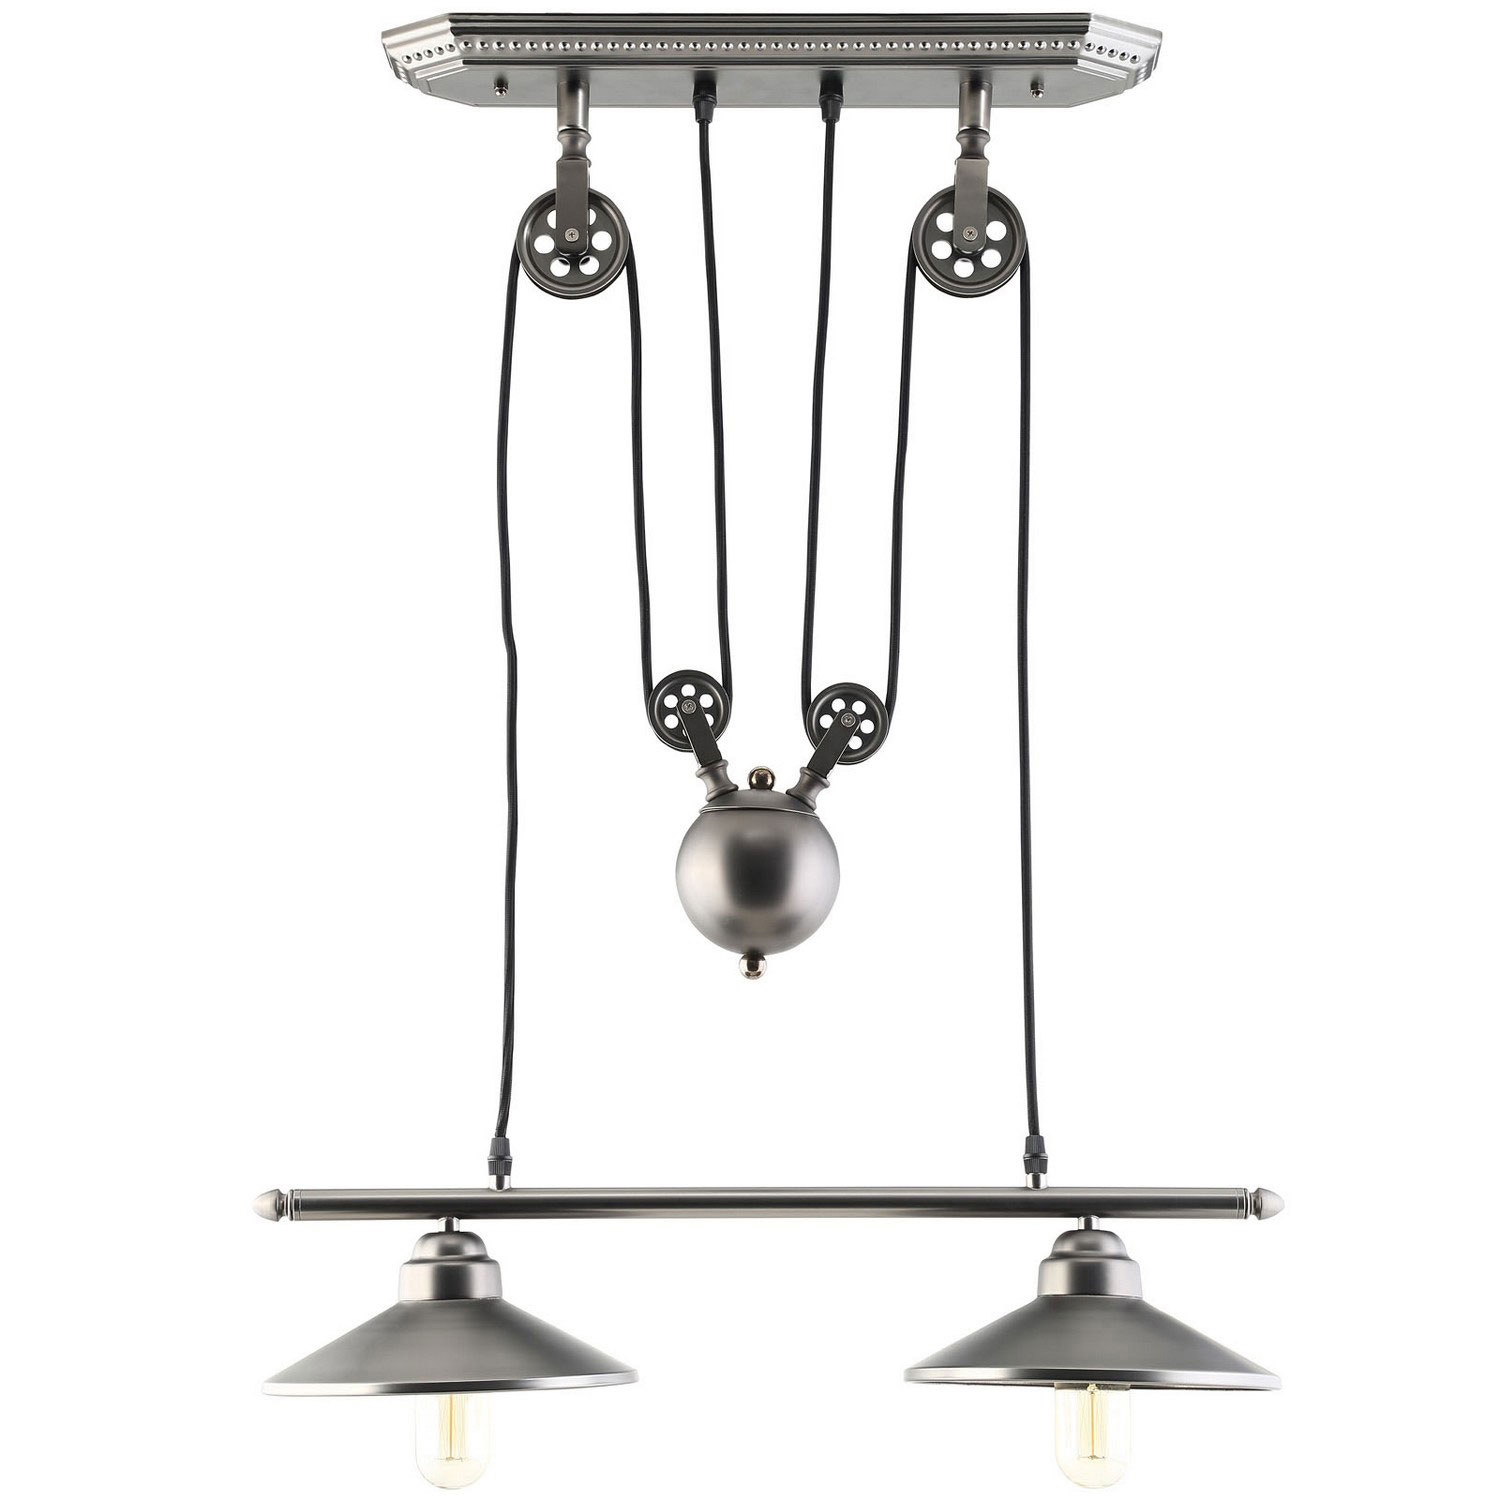 Modway Innovateous Ceiling Fixture - Silver